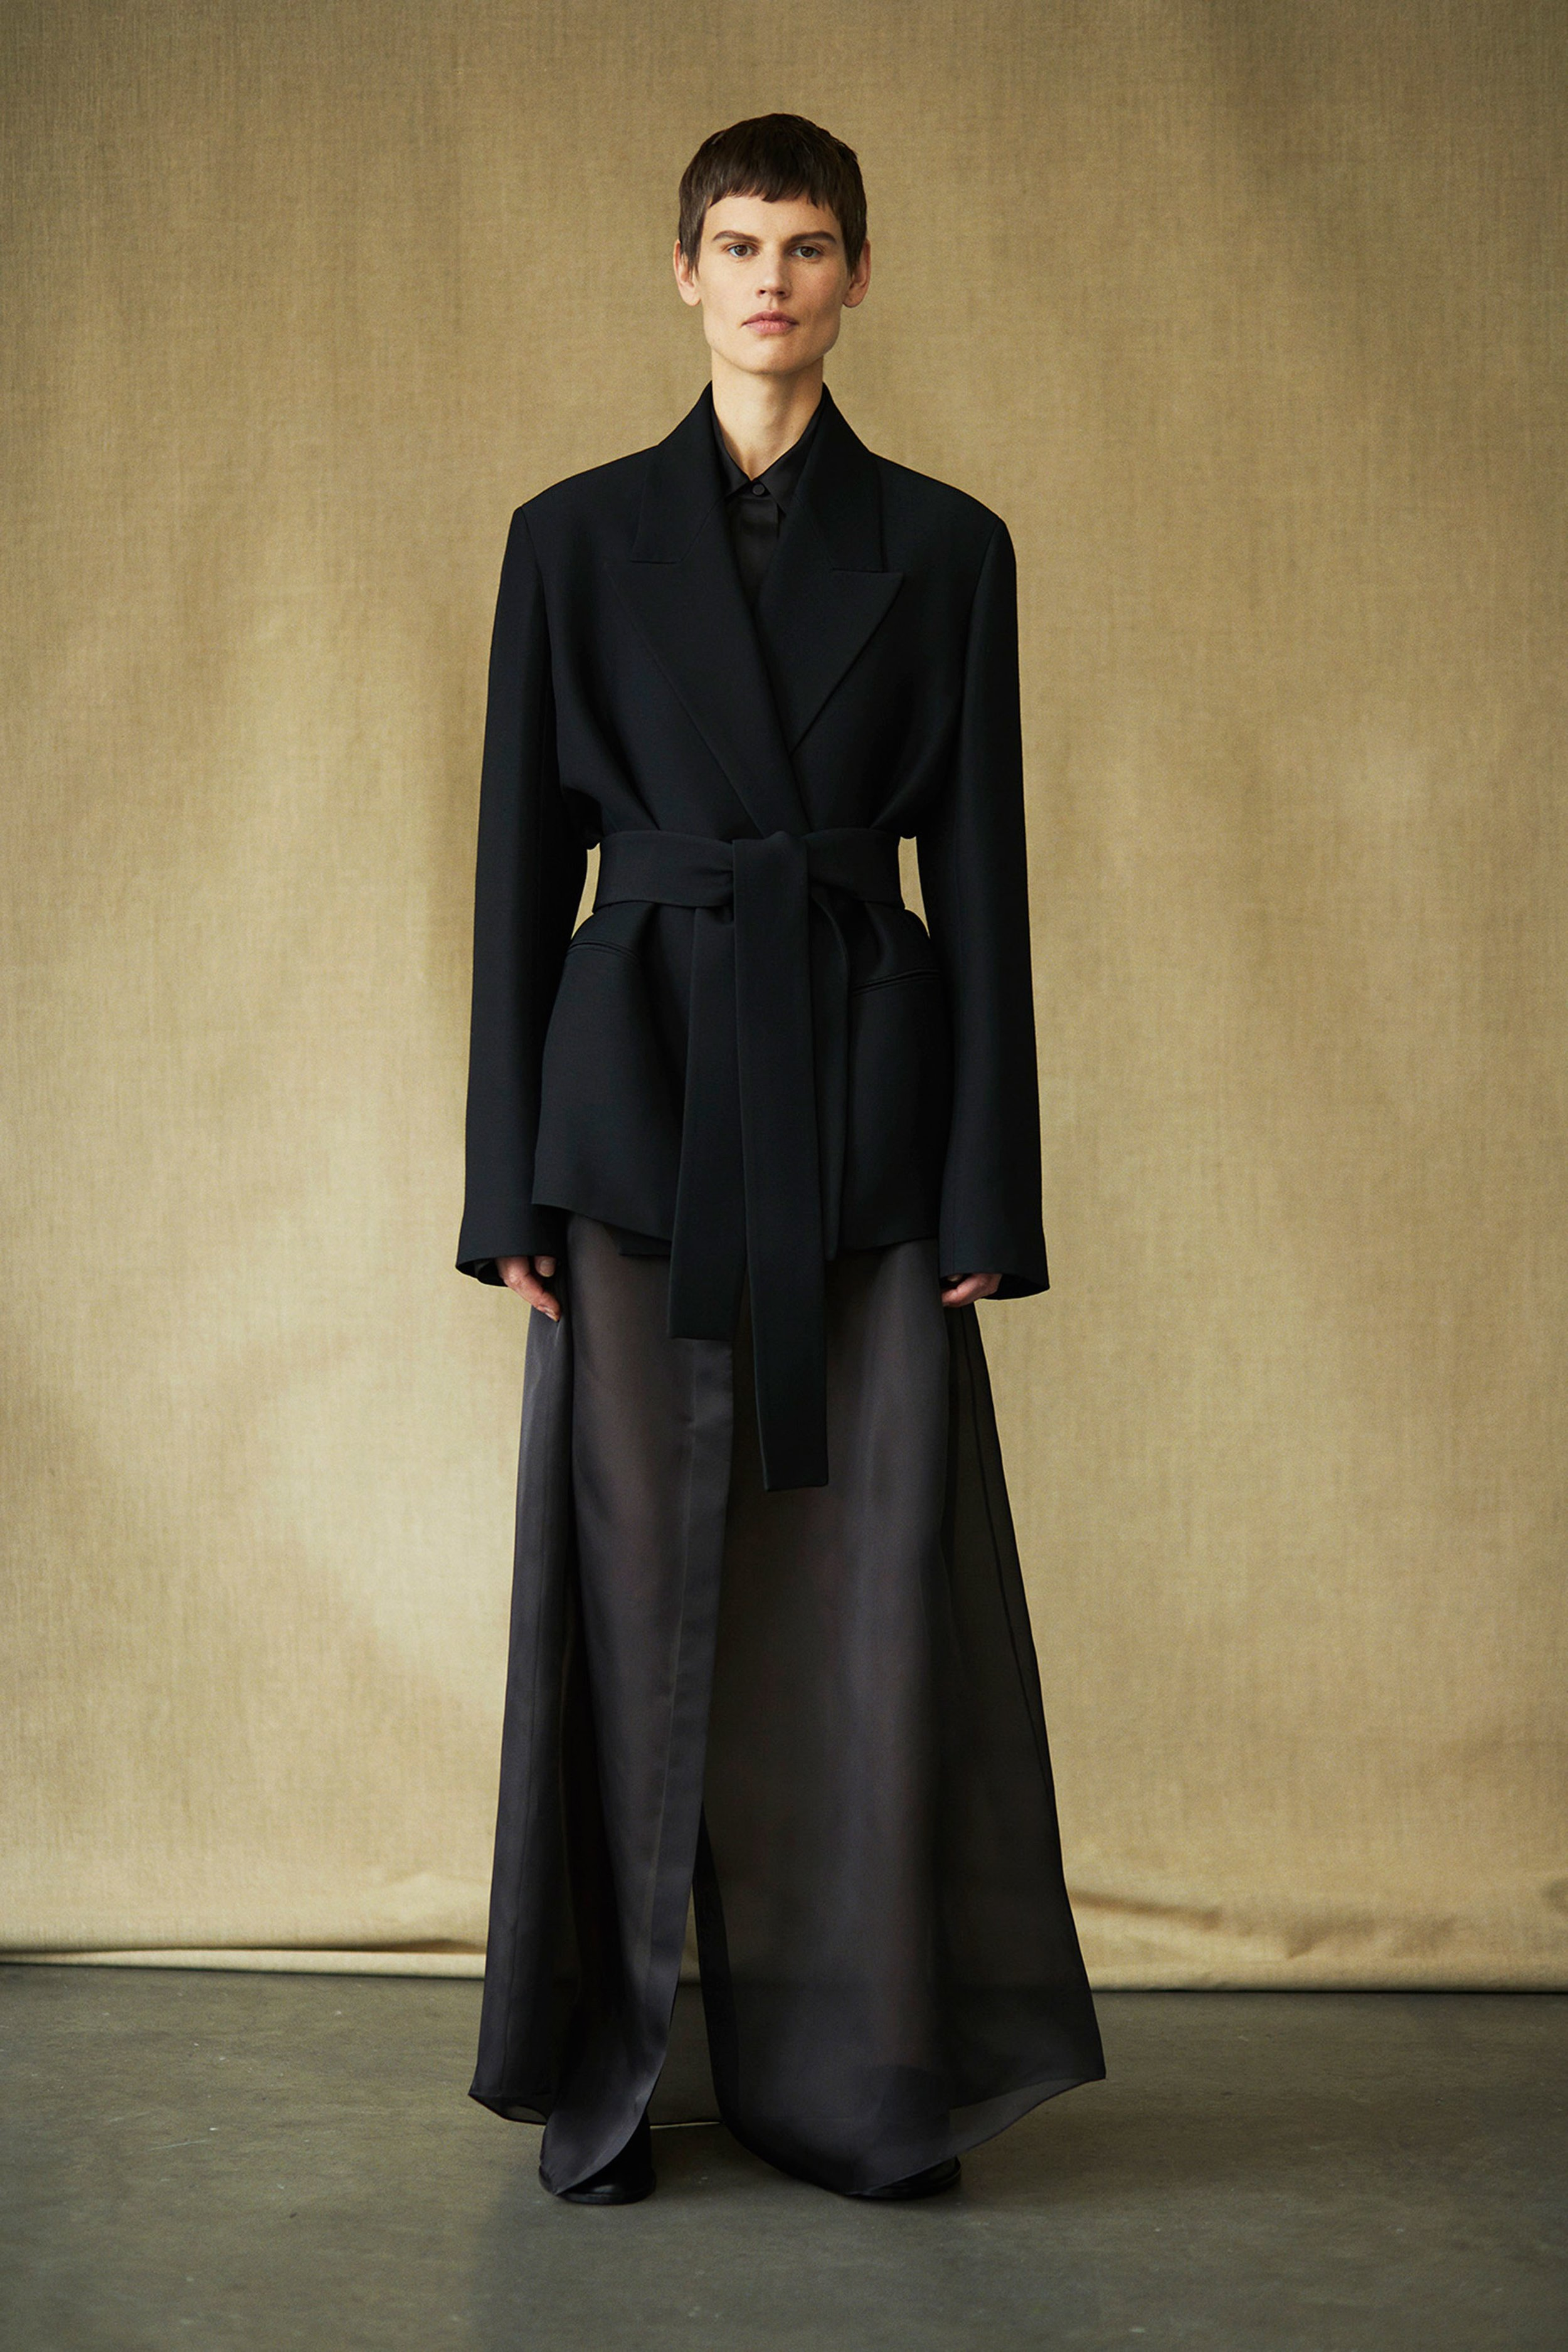 00003-The-Row-collection-spring-2019-ready-to-wear[1].jpg